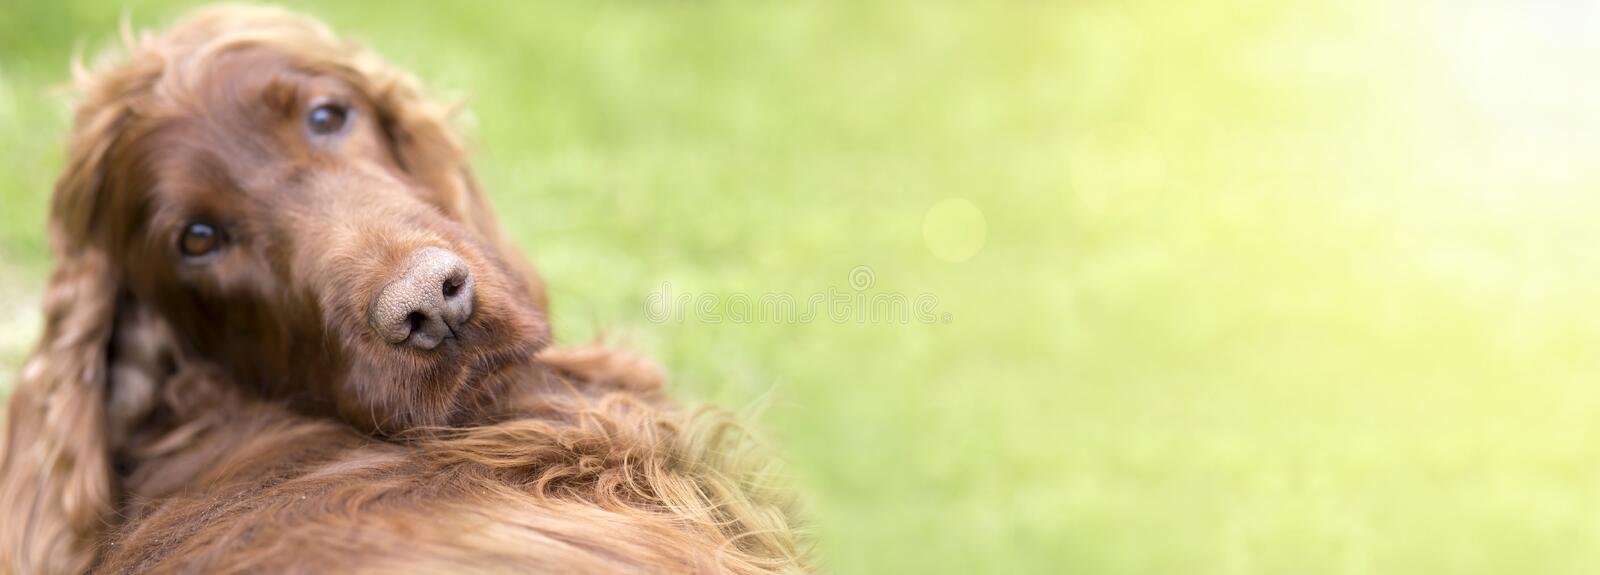 Funny dog puppy banner stock photo